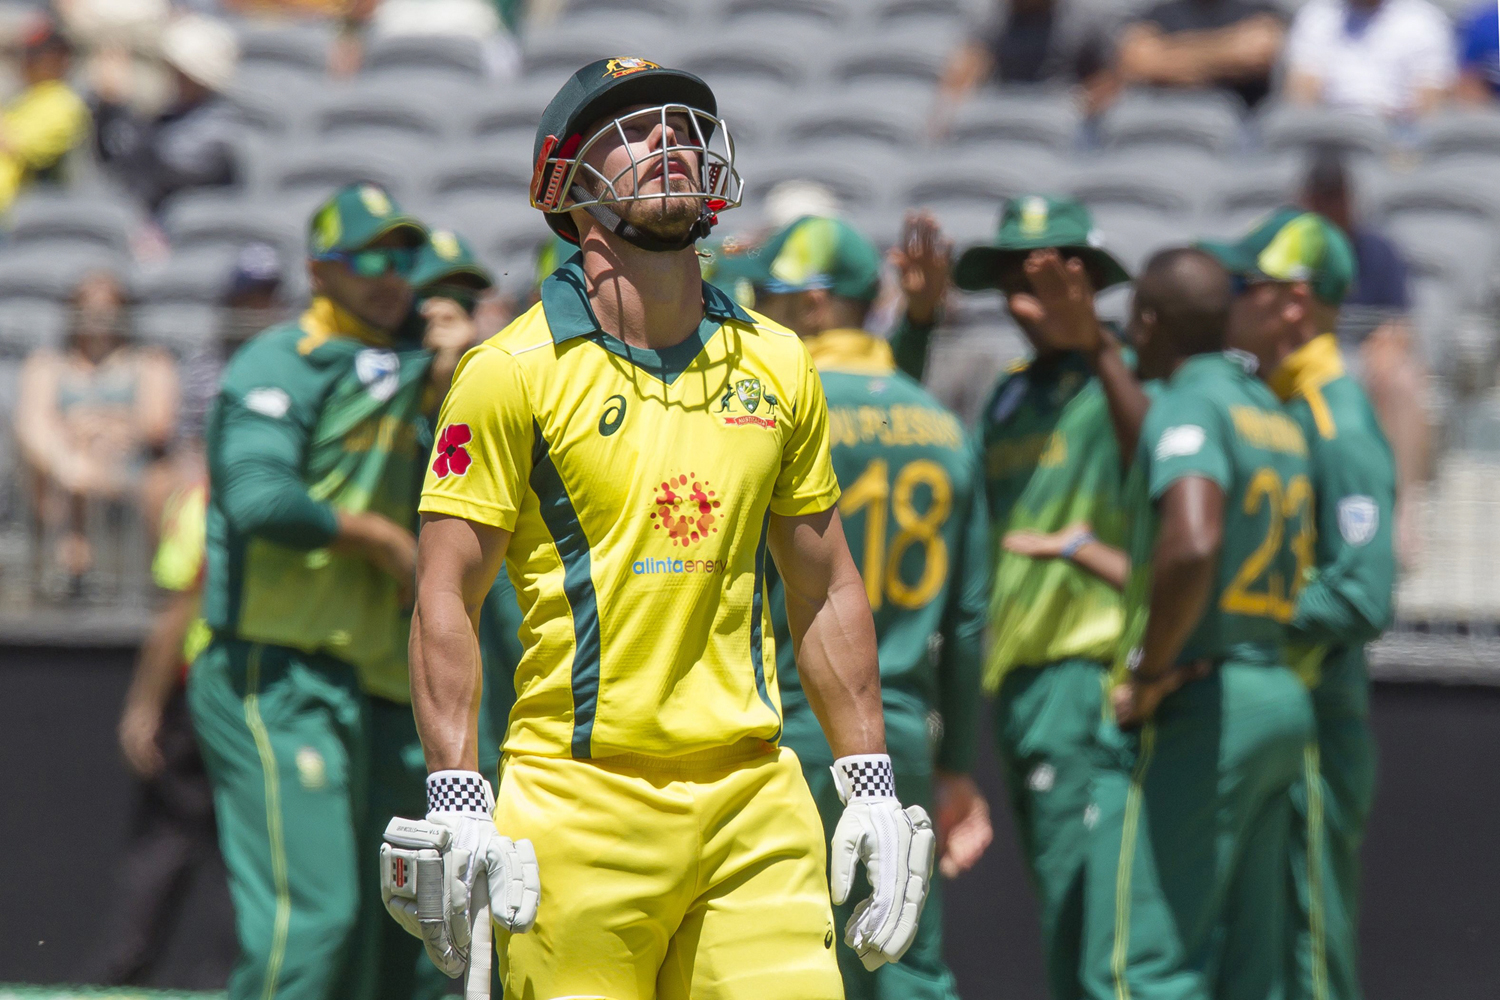 Australia's Chris Lynn (C) walks off after being dismissed during the first one-day international (ODI) cricket match between South Africa and Australia at the Optus Stadium in Perth on November 4, 2018. (Photo by TONY ASHBY / AFP) / -- IMAGE RESTRICTED T